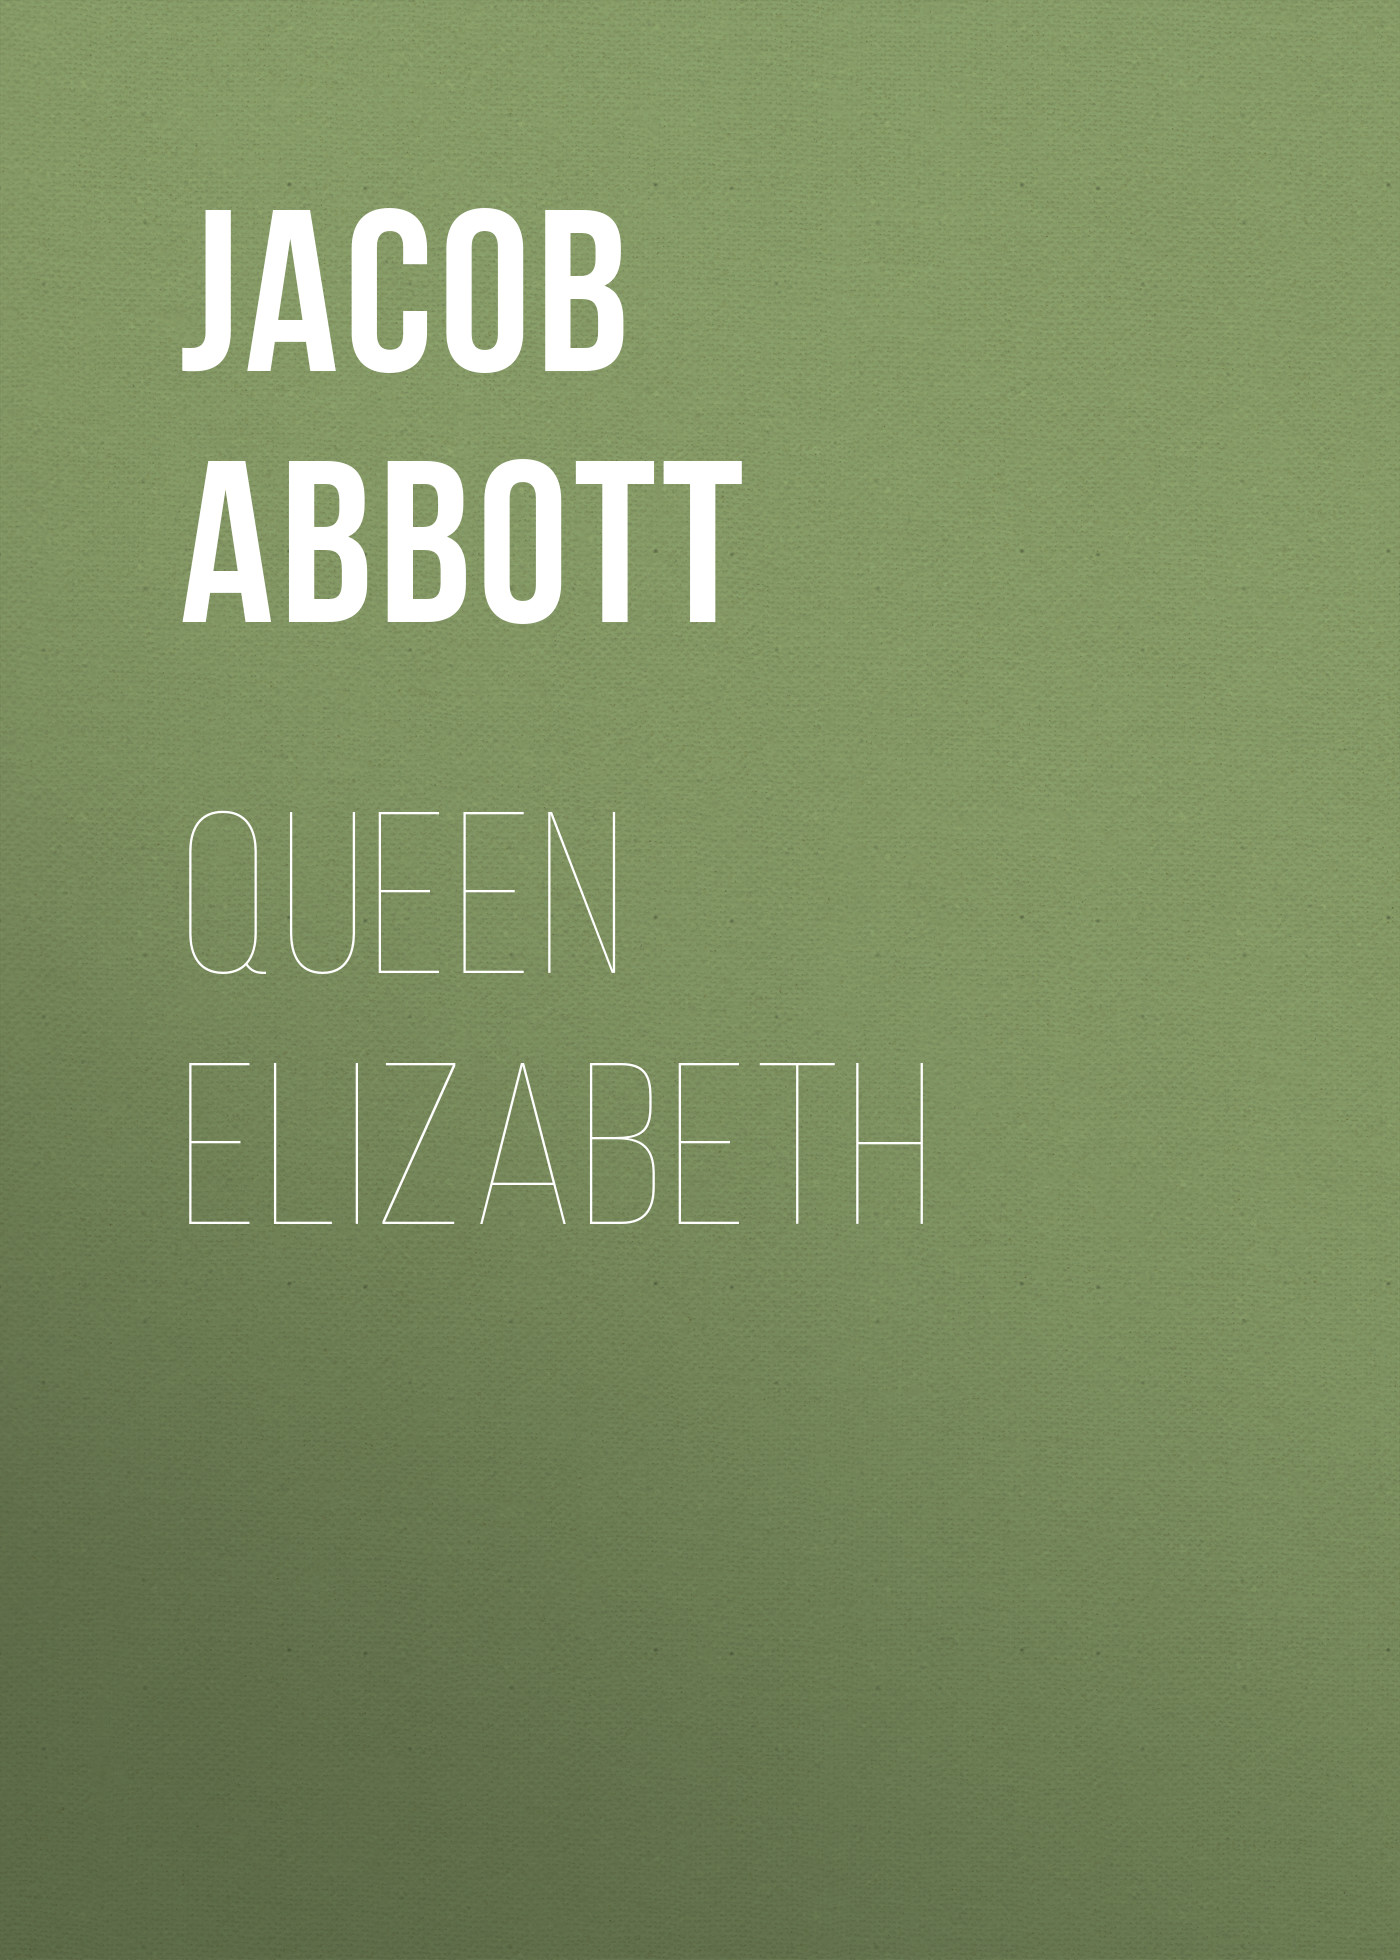 Abbott Jacob Queen Elizabeth abbott jacob nero